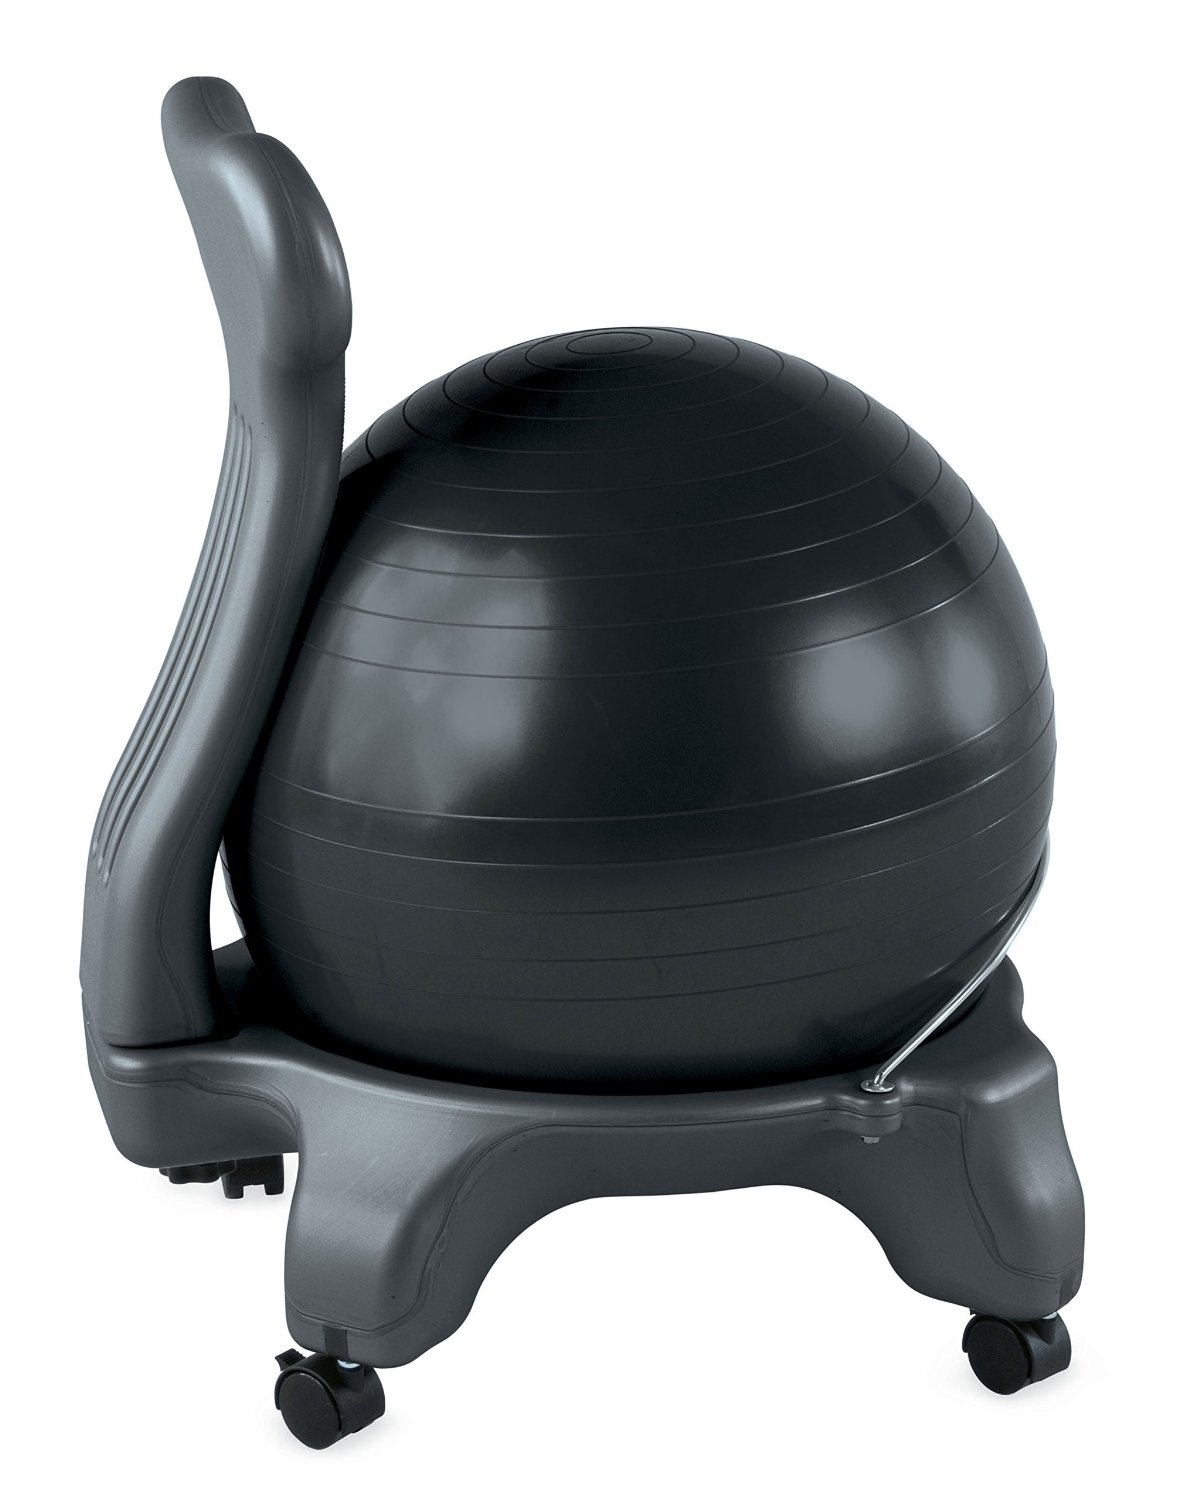 yoga ball chair exercises heavy duty gas lift for office 2014 marfan rd gift and resource guide musings of a mom